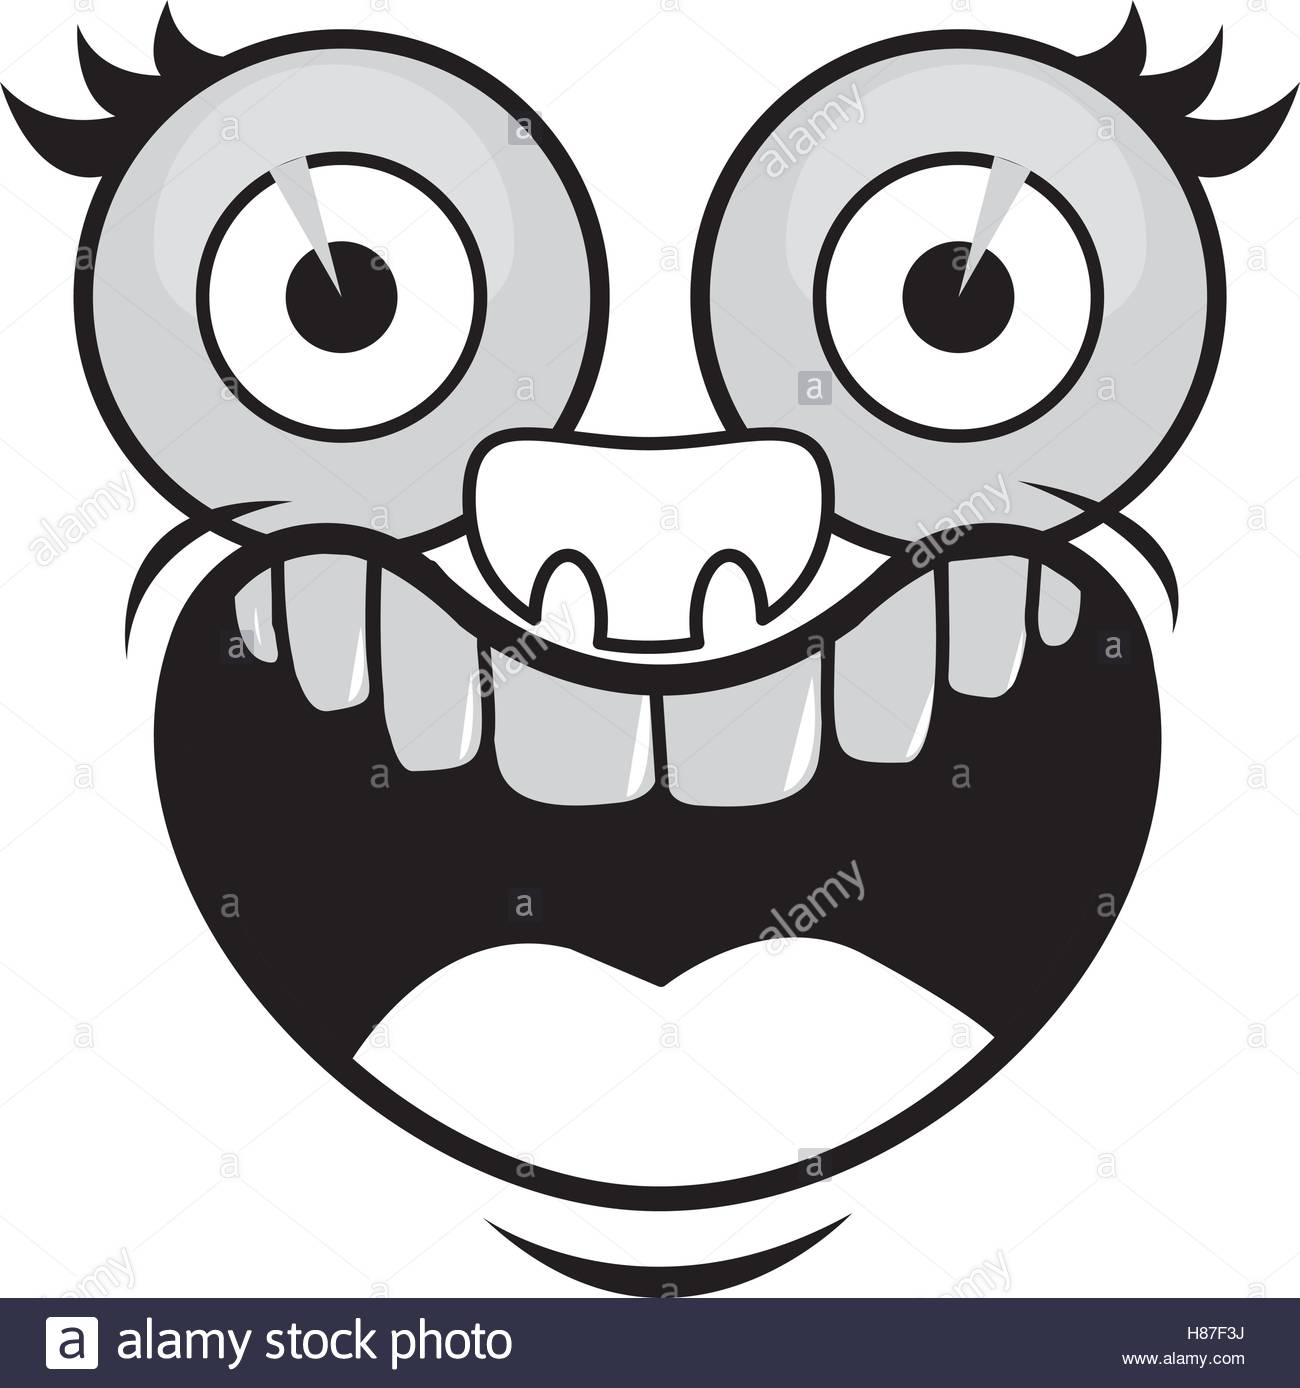 1300x1388 Silhouette Of Cartoon Face With Happy Expression Over White Stock